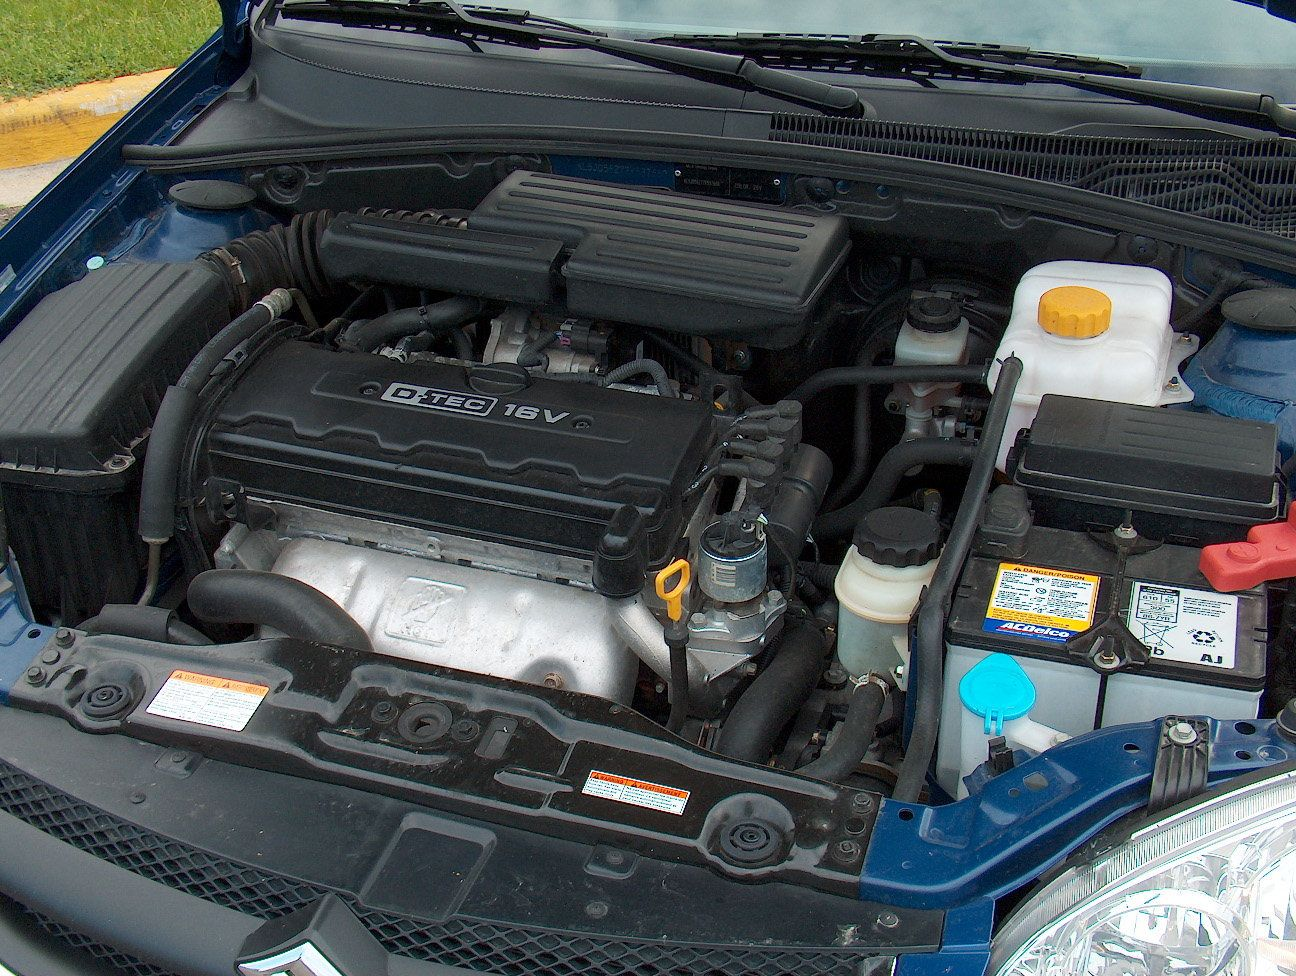 2007 #SUZUKI FORENZA #GAS #ENGINE GAS 2.0L: Part Name: 2007